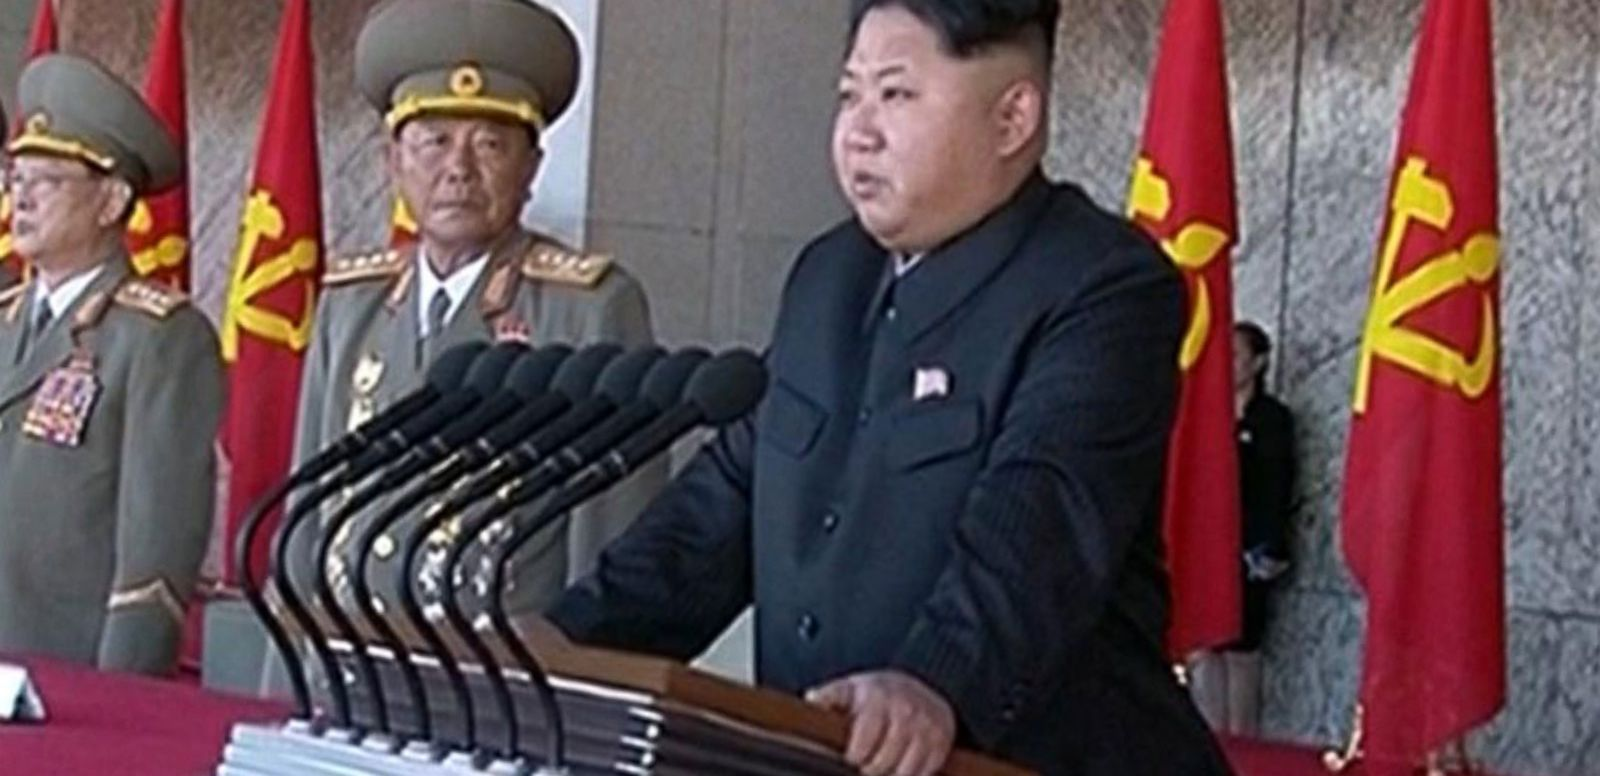 VIDEO: North Korean Leader Says Country Ready to Stand up to US